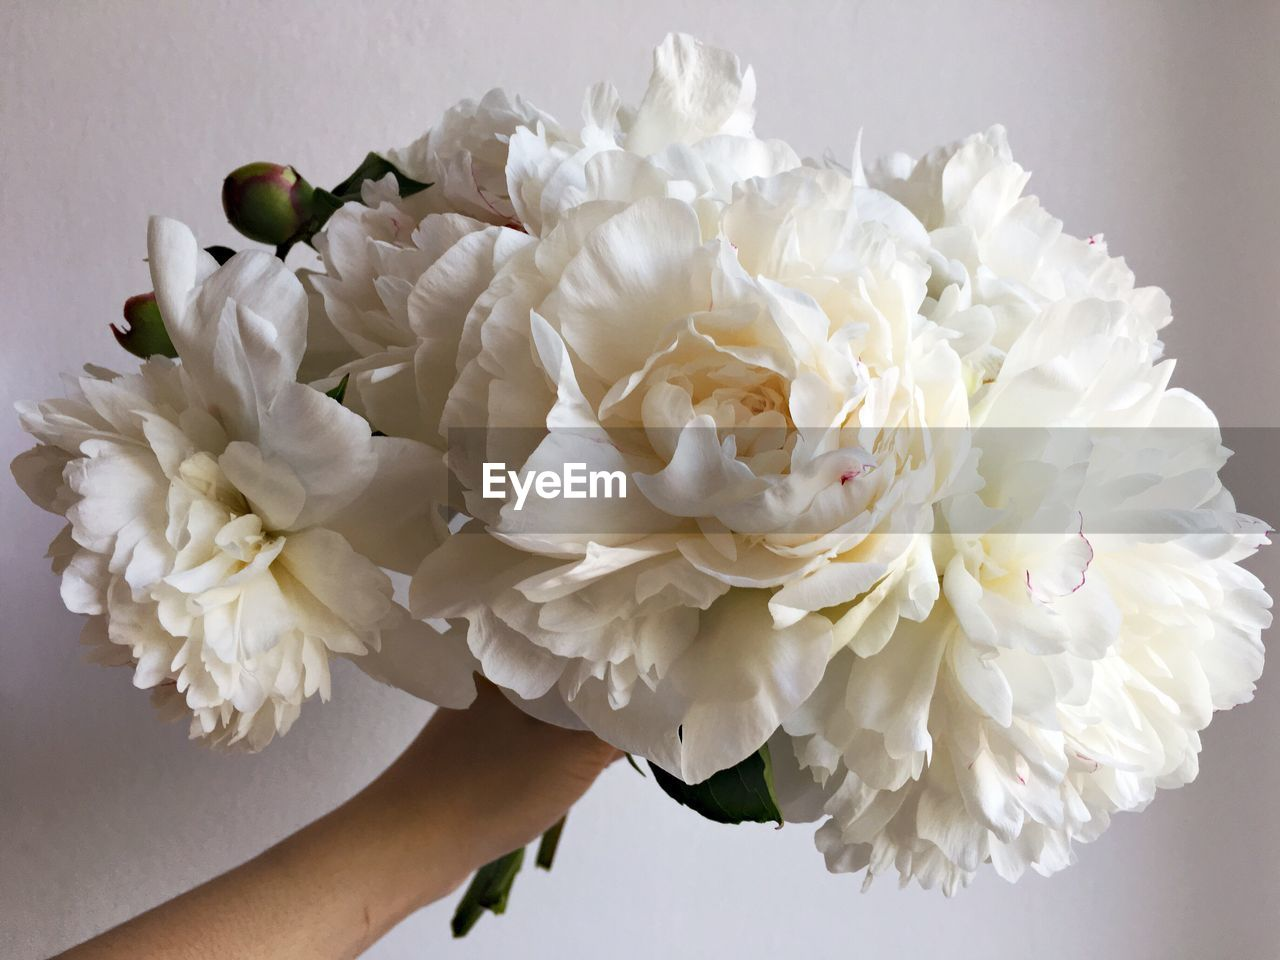 flower, petal, white color, flower head, rose - flower, beauty in nature, nature, fragility, freshness, close-up, no people, indoors, day